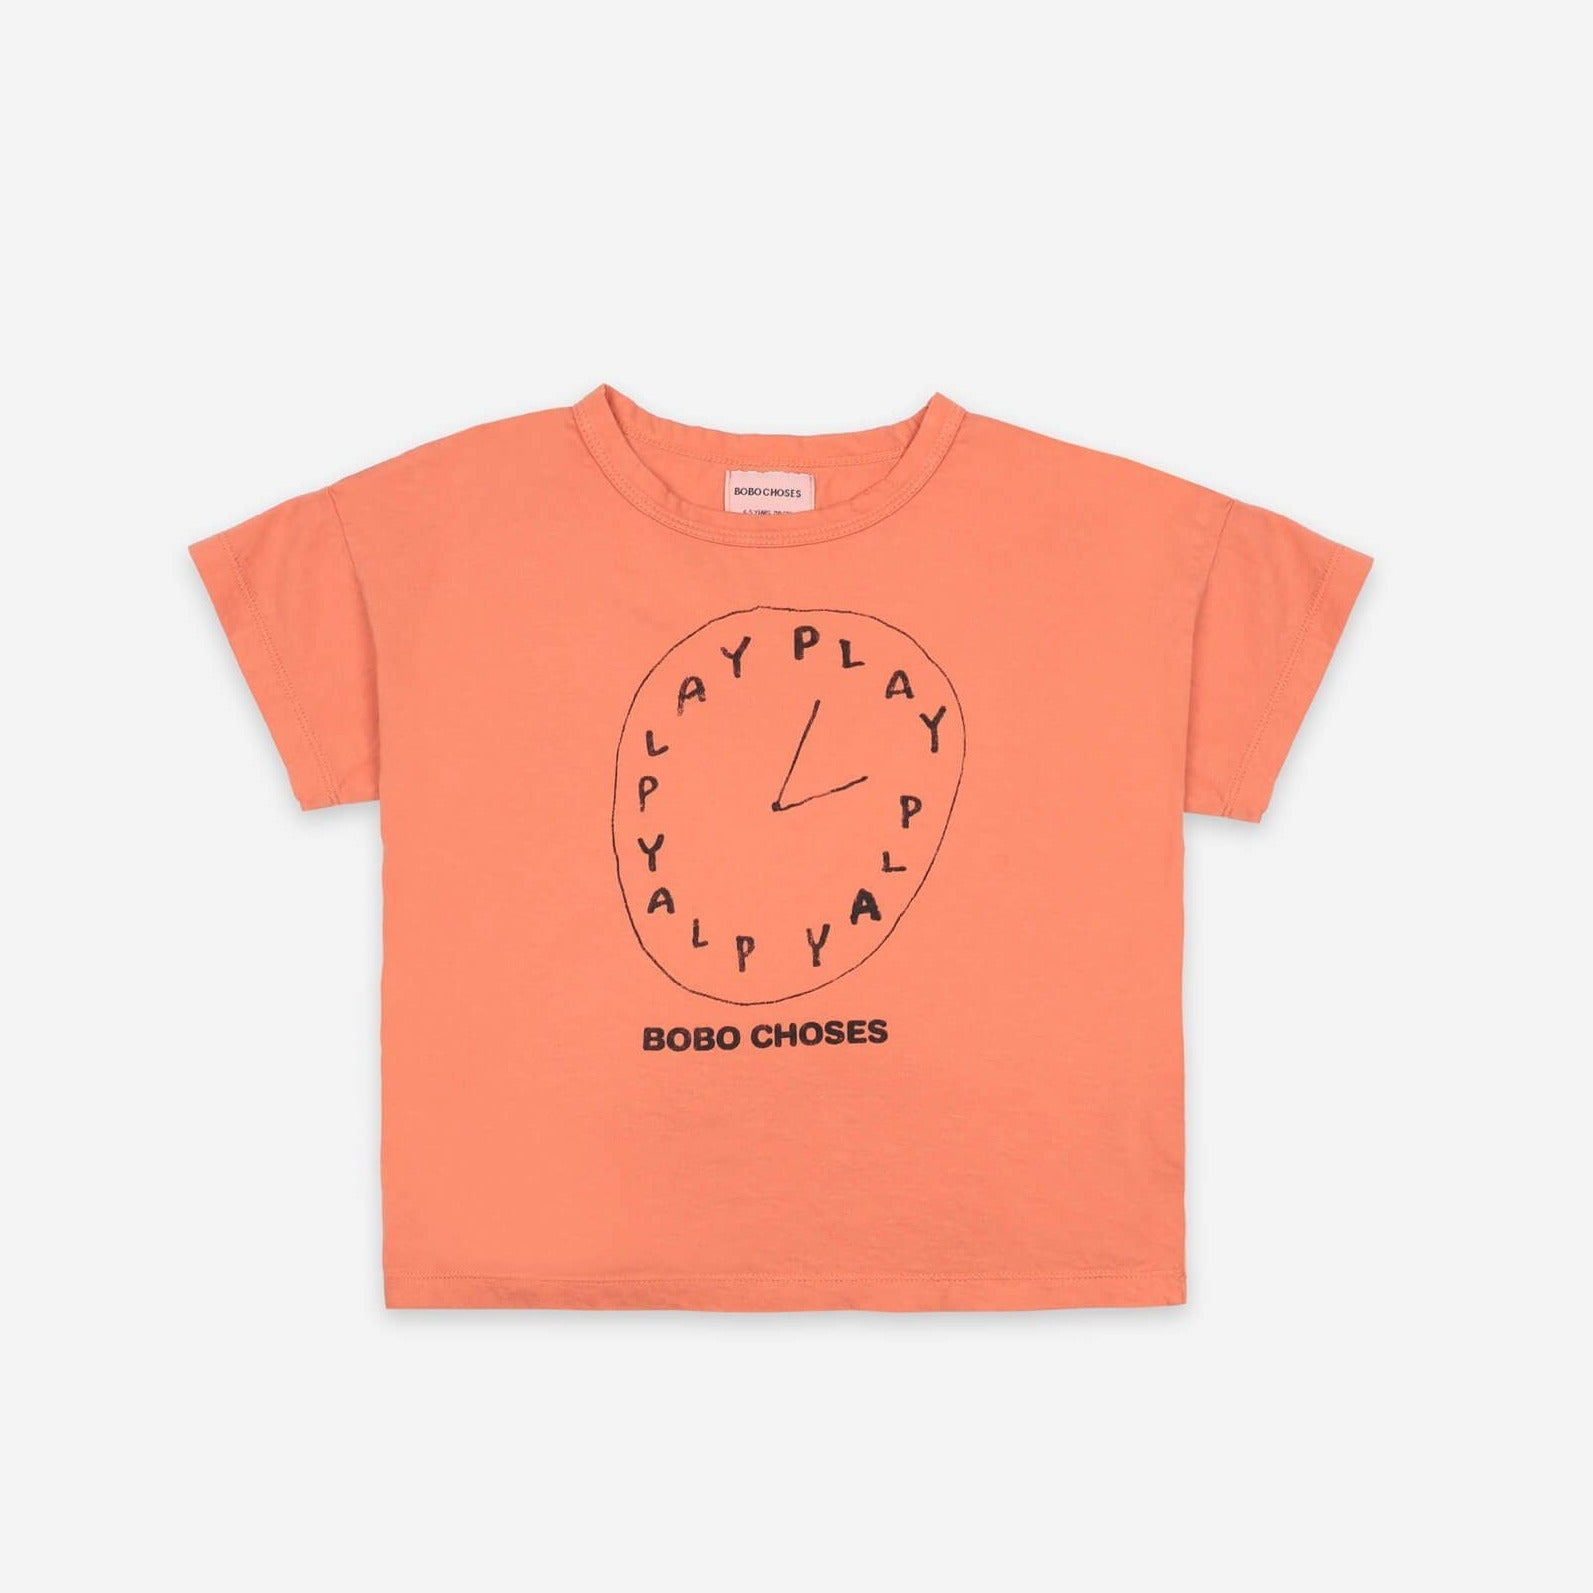 Playtime Short Sleeve T-Shirt